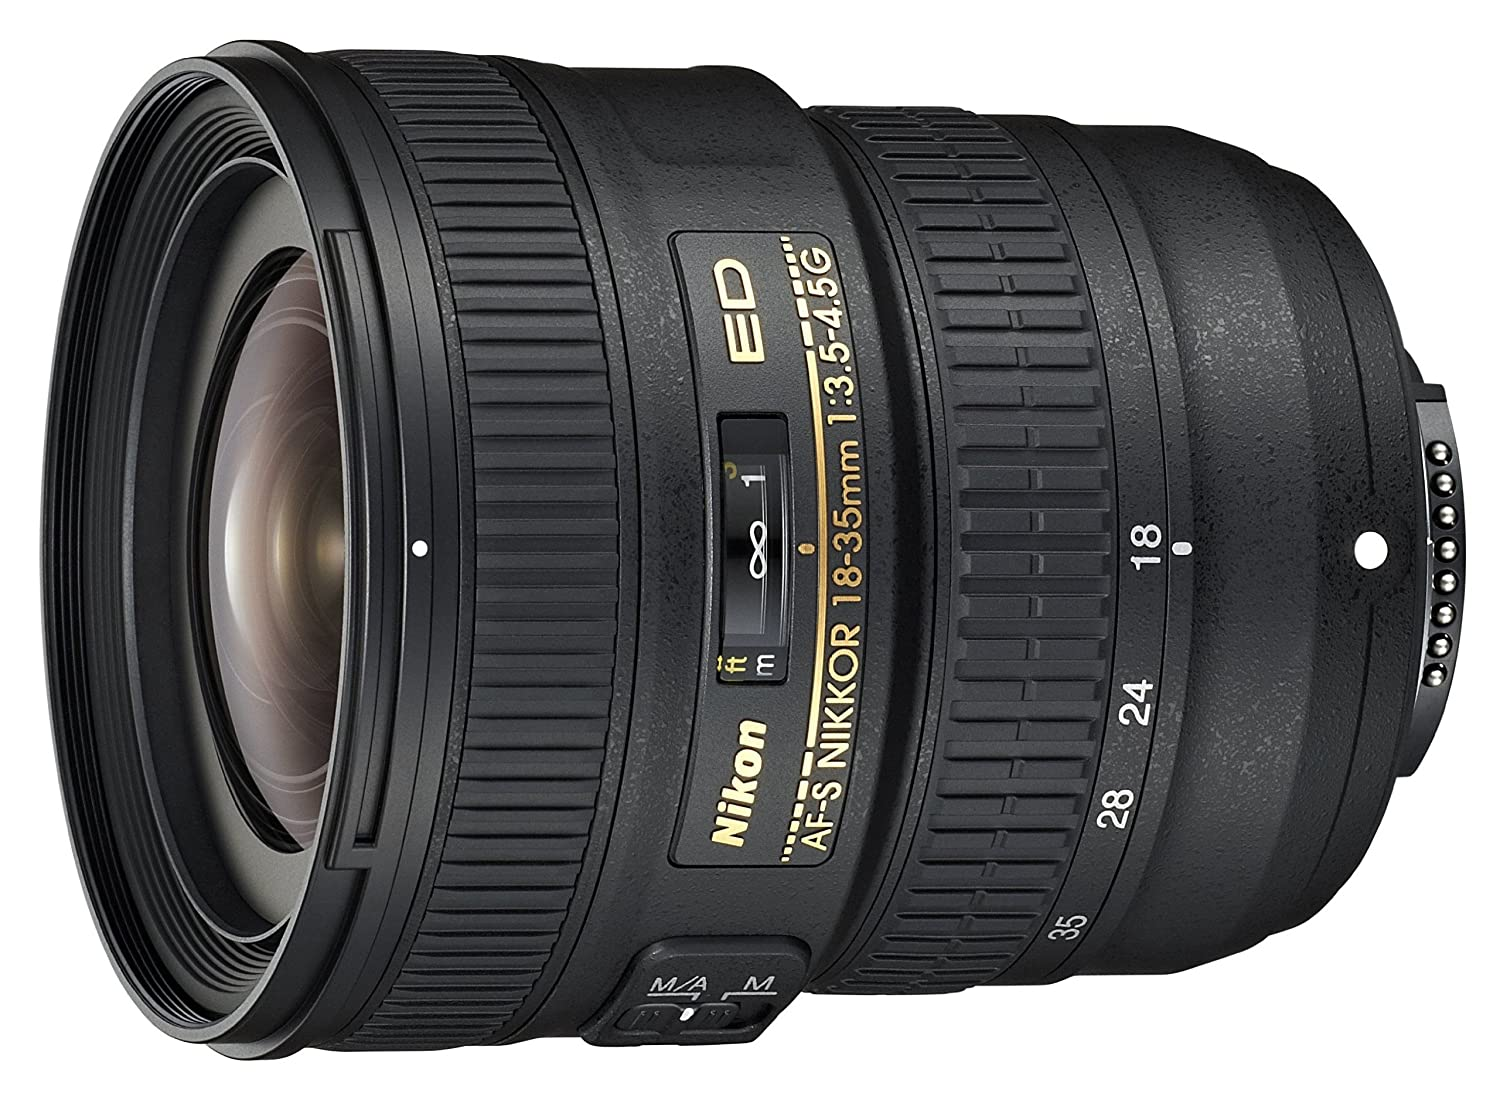 Amazon.com : Nikon AF-S FX NIKKOR 18-35mm f/3.5-4.5G ED Zoom Lens ...